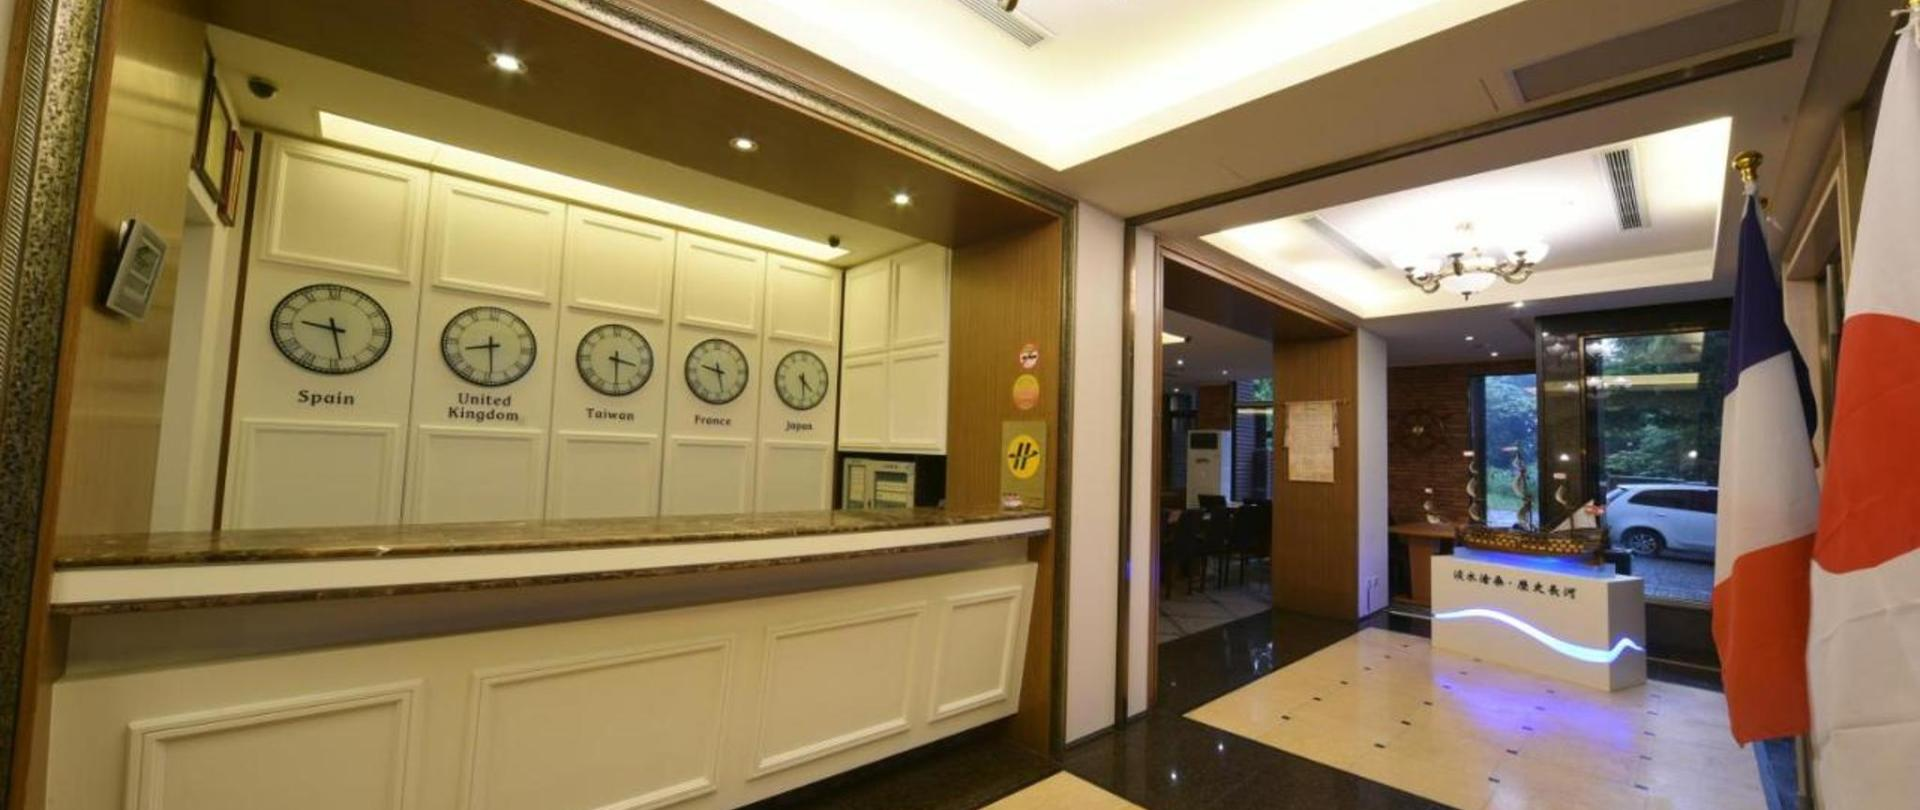 Sunrise Business Hotel - Tamsui